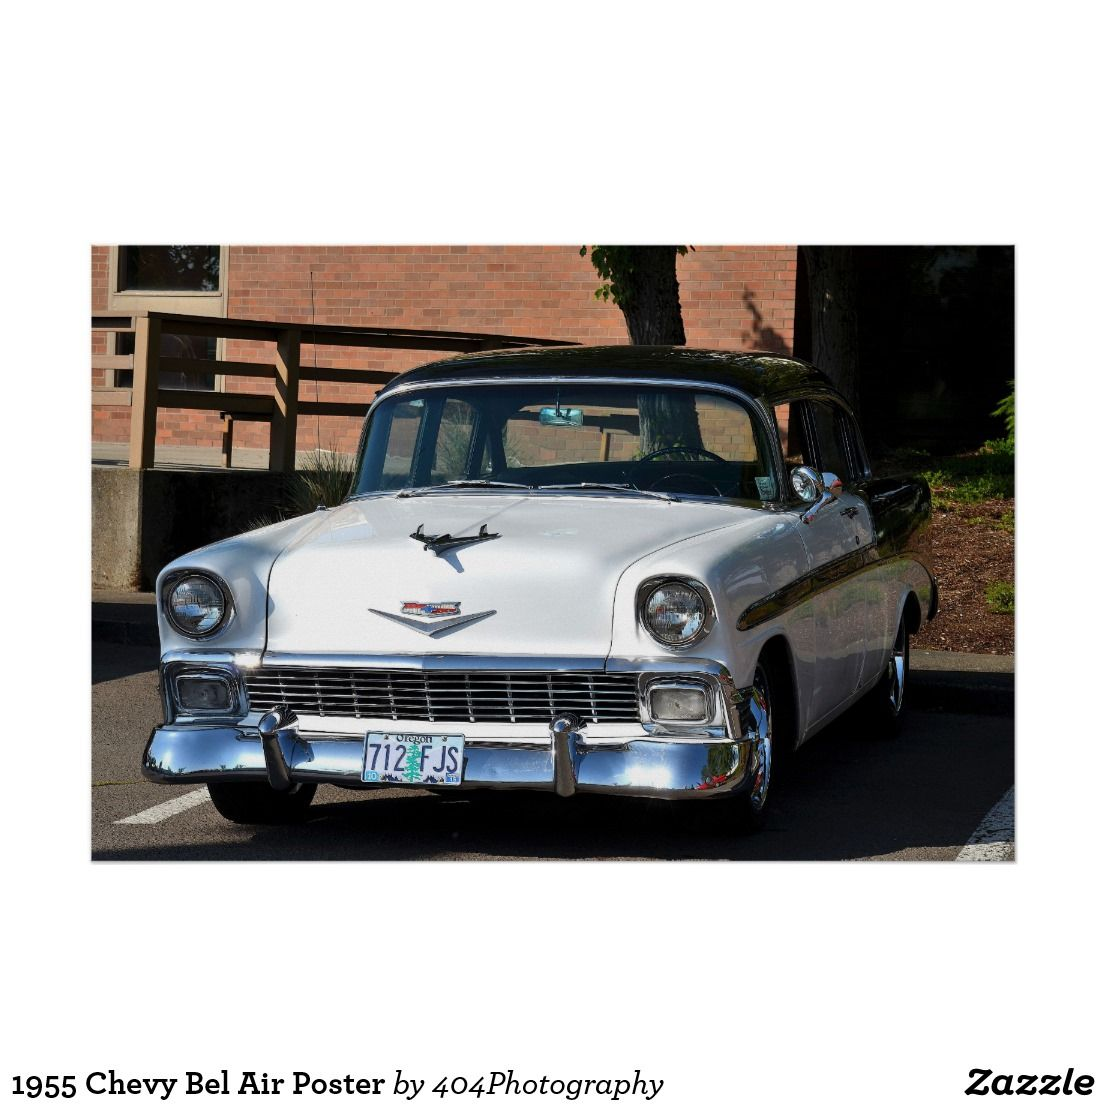 1955 Chevy Bel Air Poster For Sale Classiccars Chevrolet 1955 Chevy Bel Air 1955 Chevy Chevy Bel Air